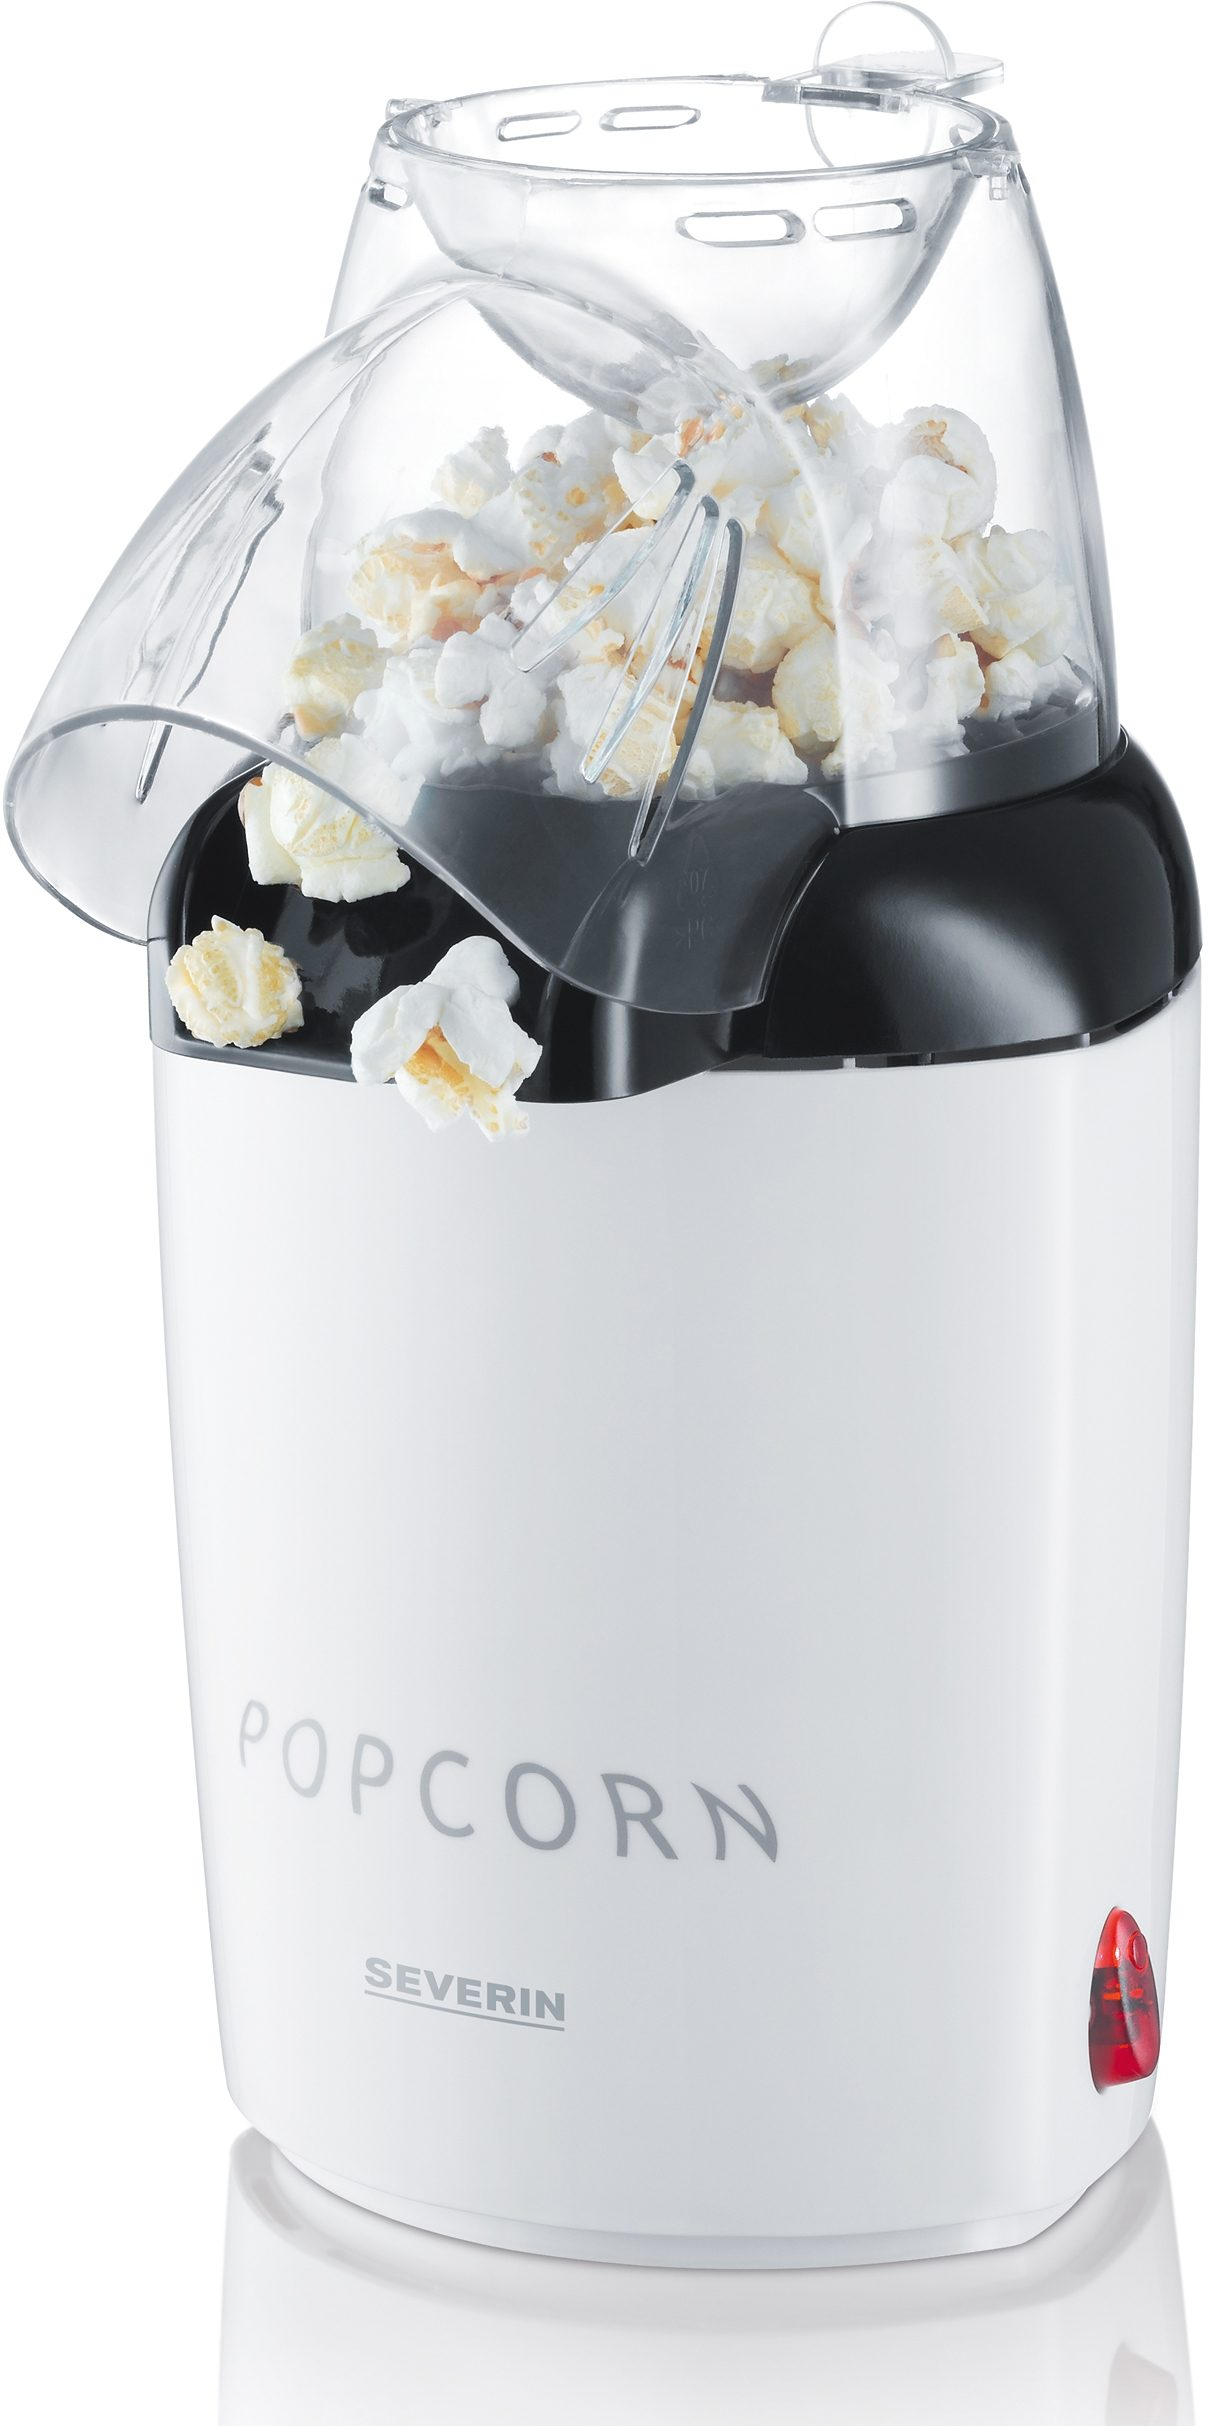 Severin Popcorn Maker PC 3751